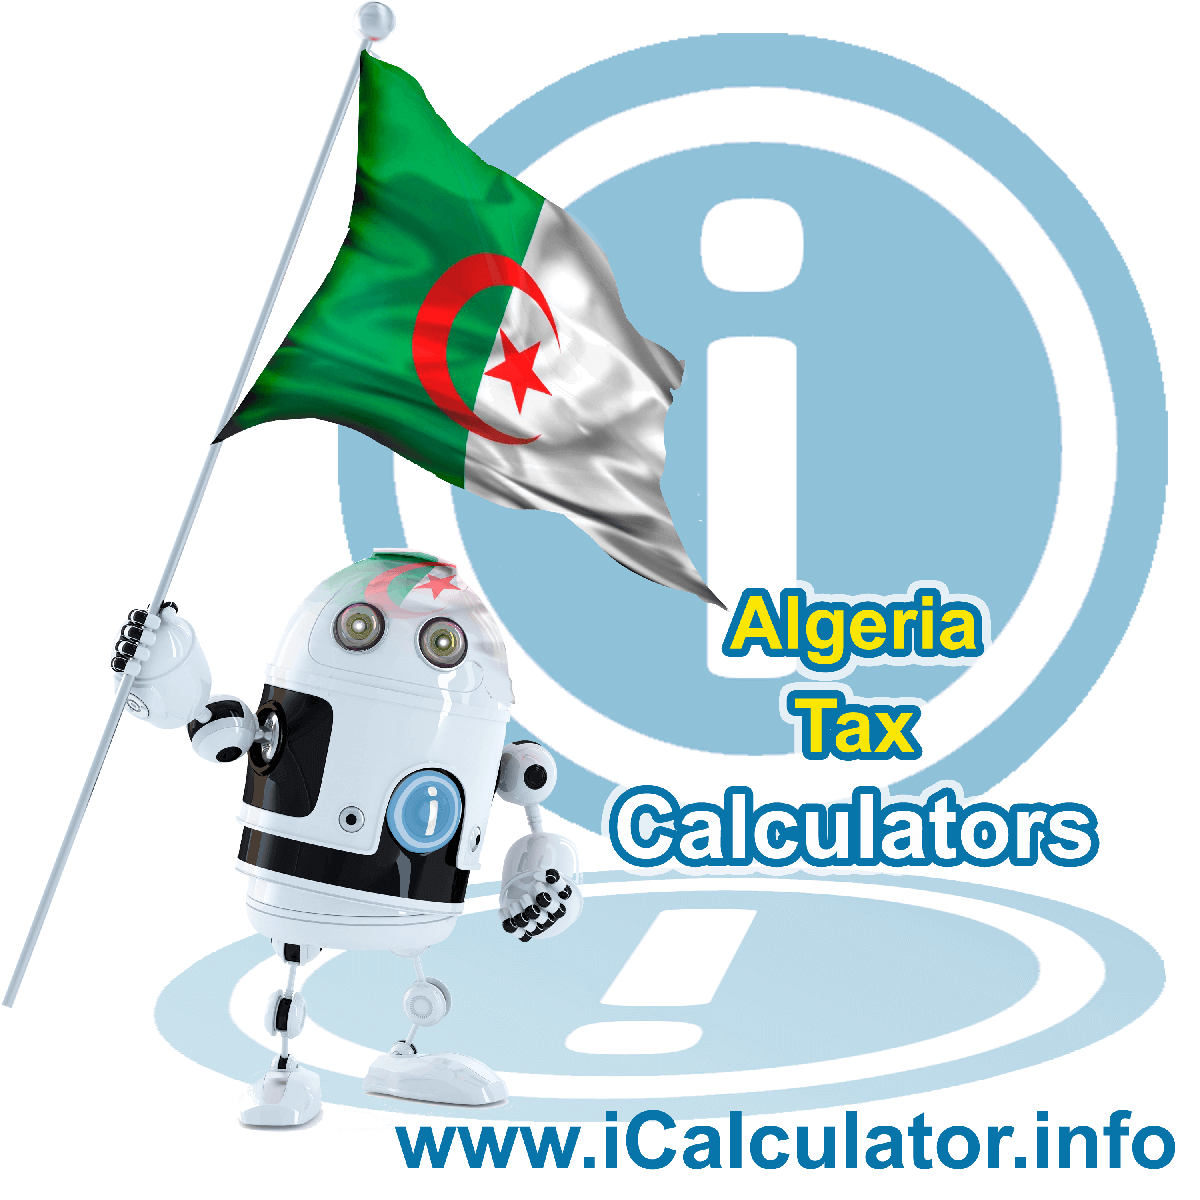 Algeria Wage Calculator. This image shows the Algeria flag and information relating to the tax formula for the Algeria Tax Calculator